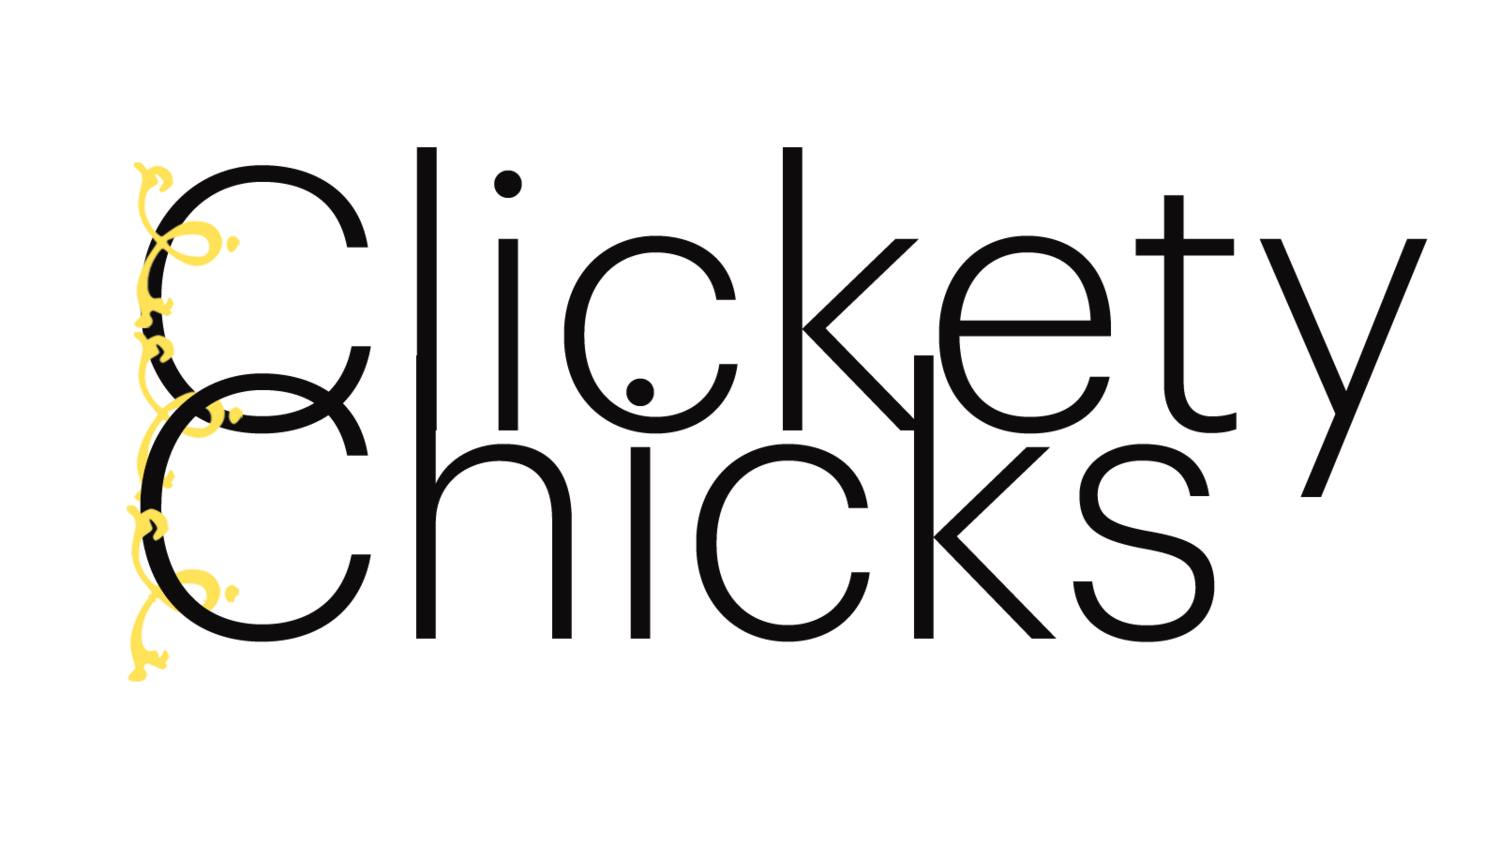 Clickety Chicks